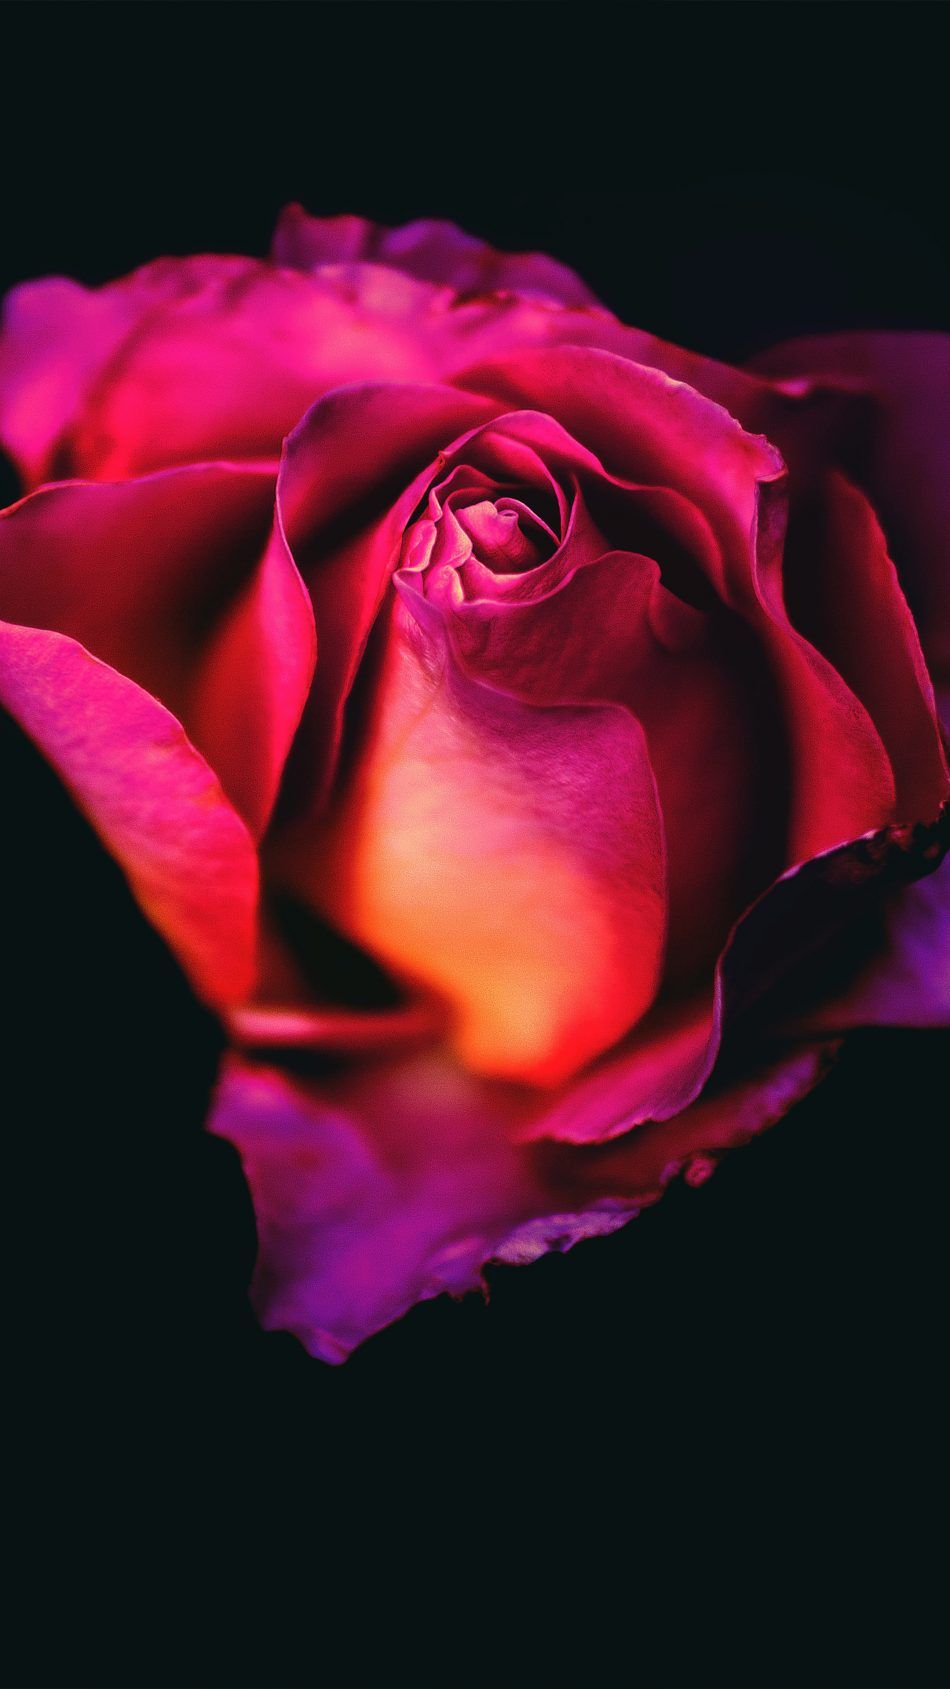 Rose Flower Dark Background Rose flower wallpaper, Rose